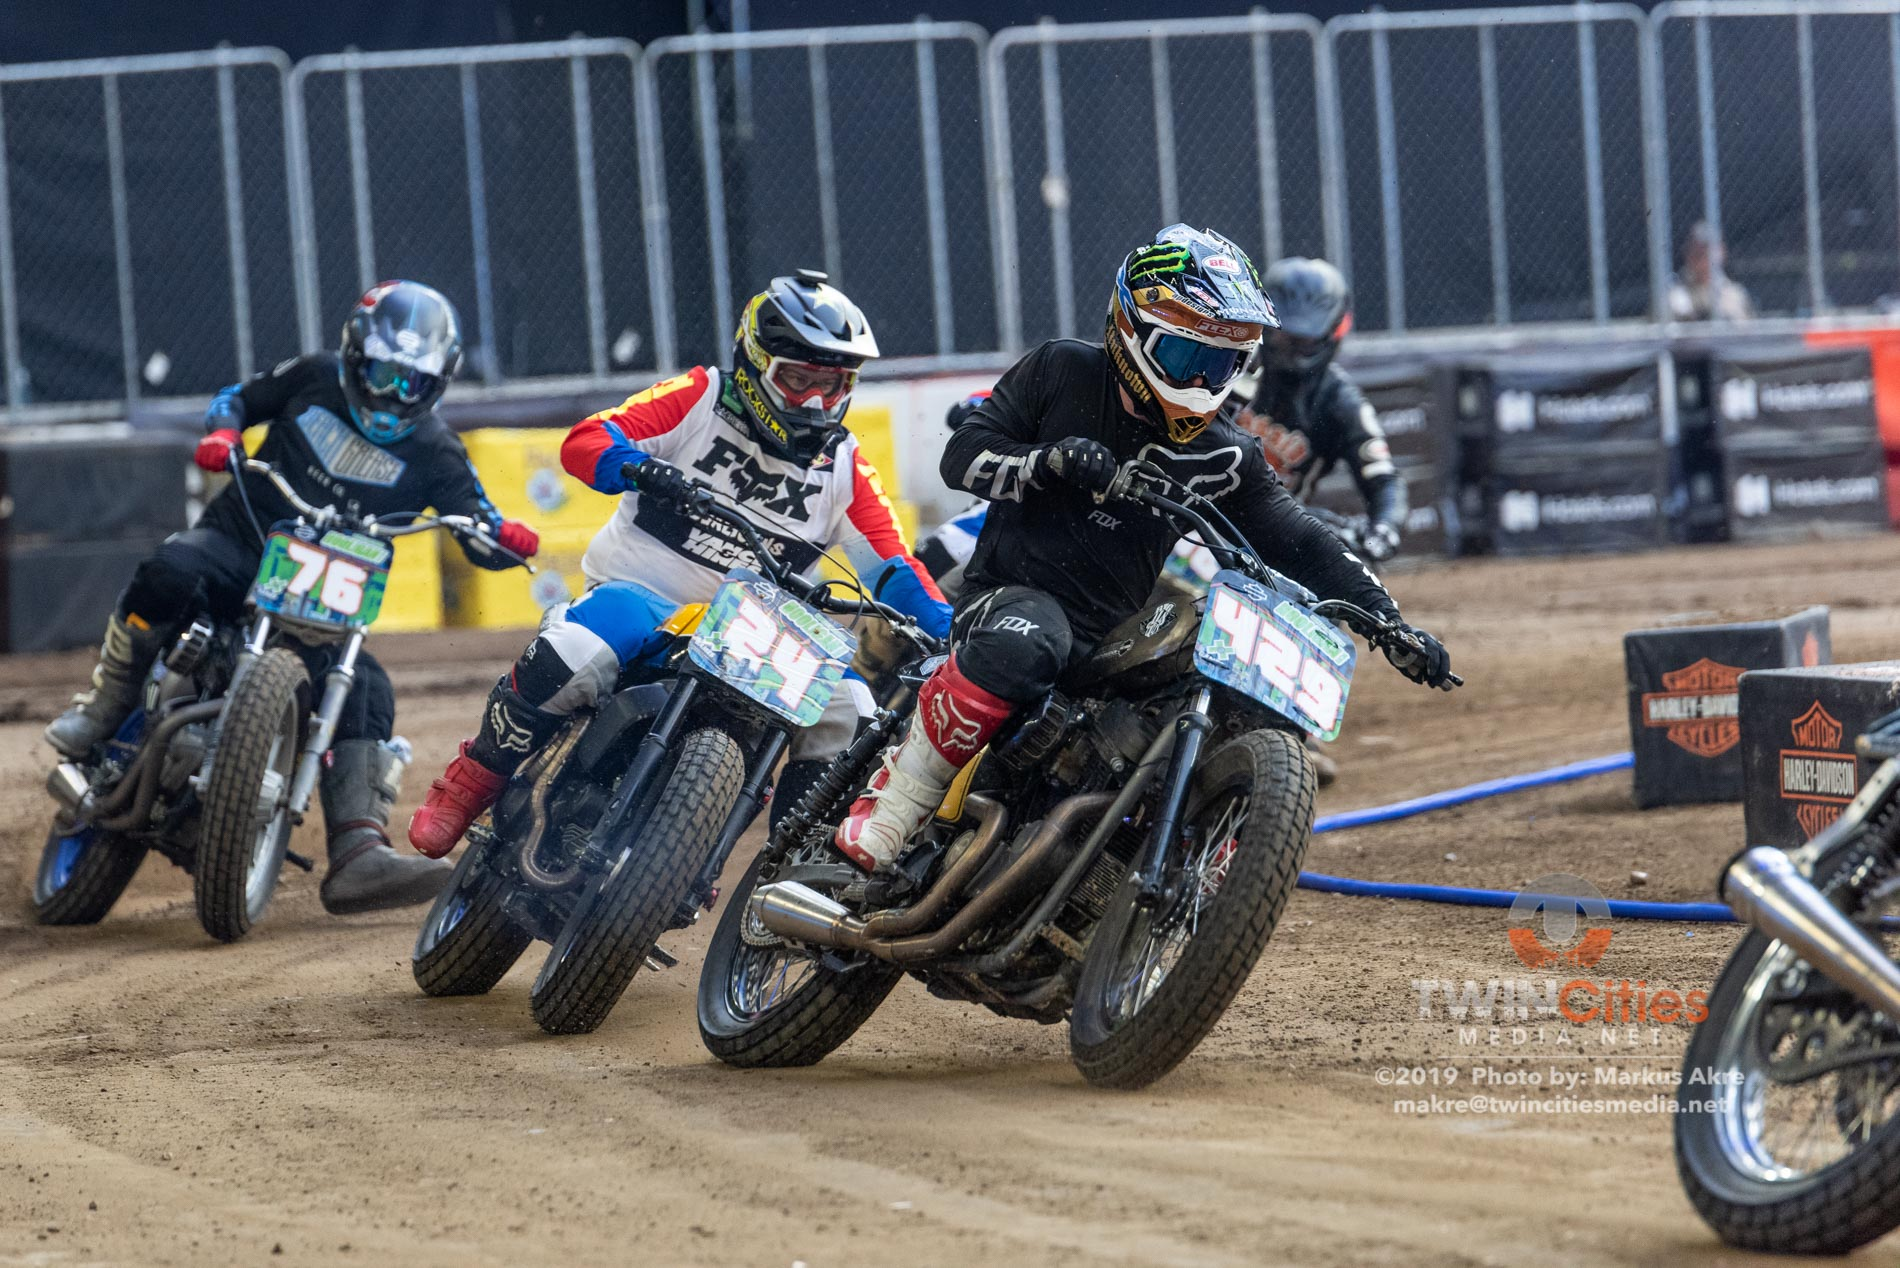 2019-X-Games-Day-4-Harley-Davidson-Hooligan-Racing-4